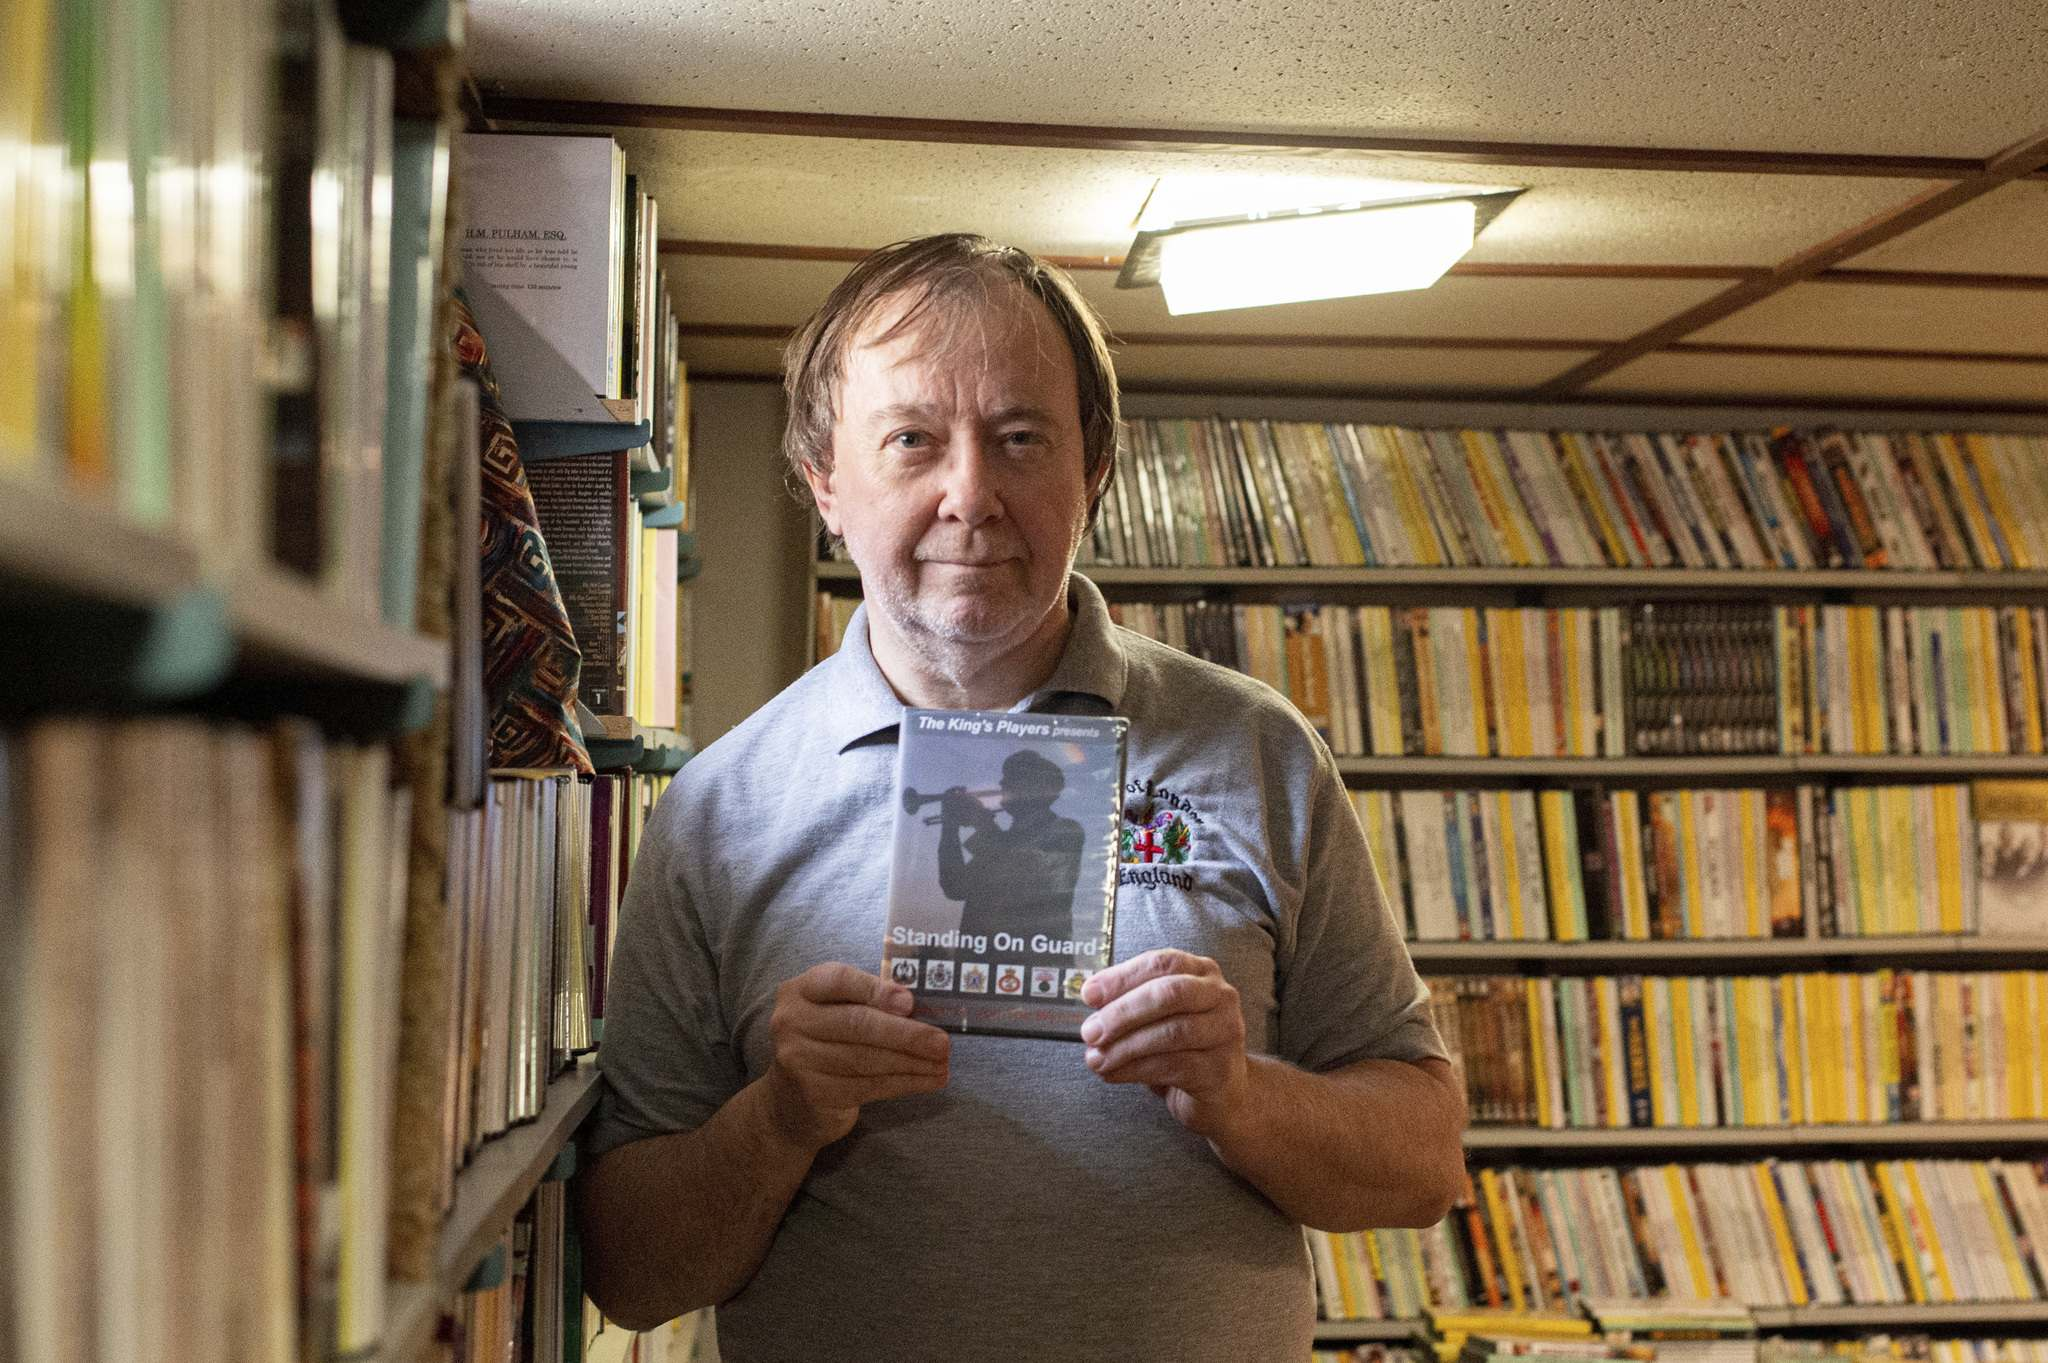 Local filmmaker Jon Ted Wynne shows off a copy of his film, Standing on Guard, which features Prince Philip. (Mike Sudoma / Winnipeg Free Press)</p>